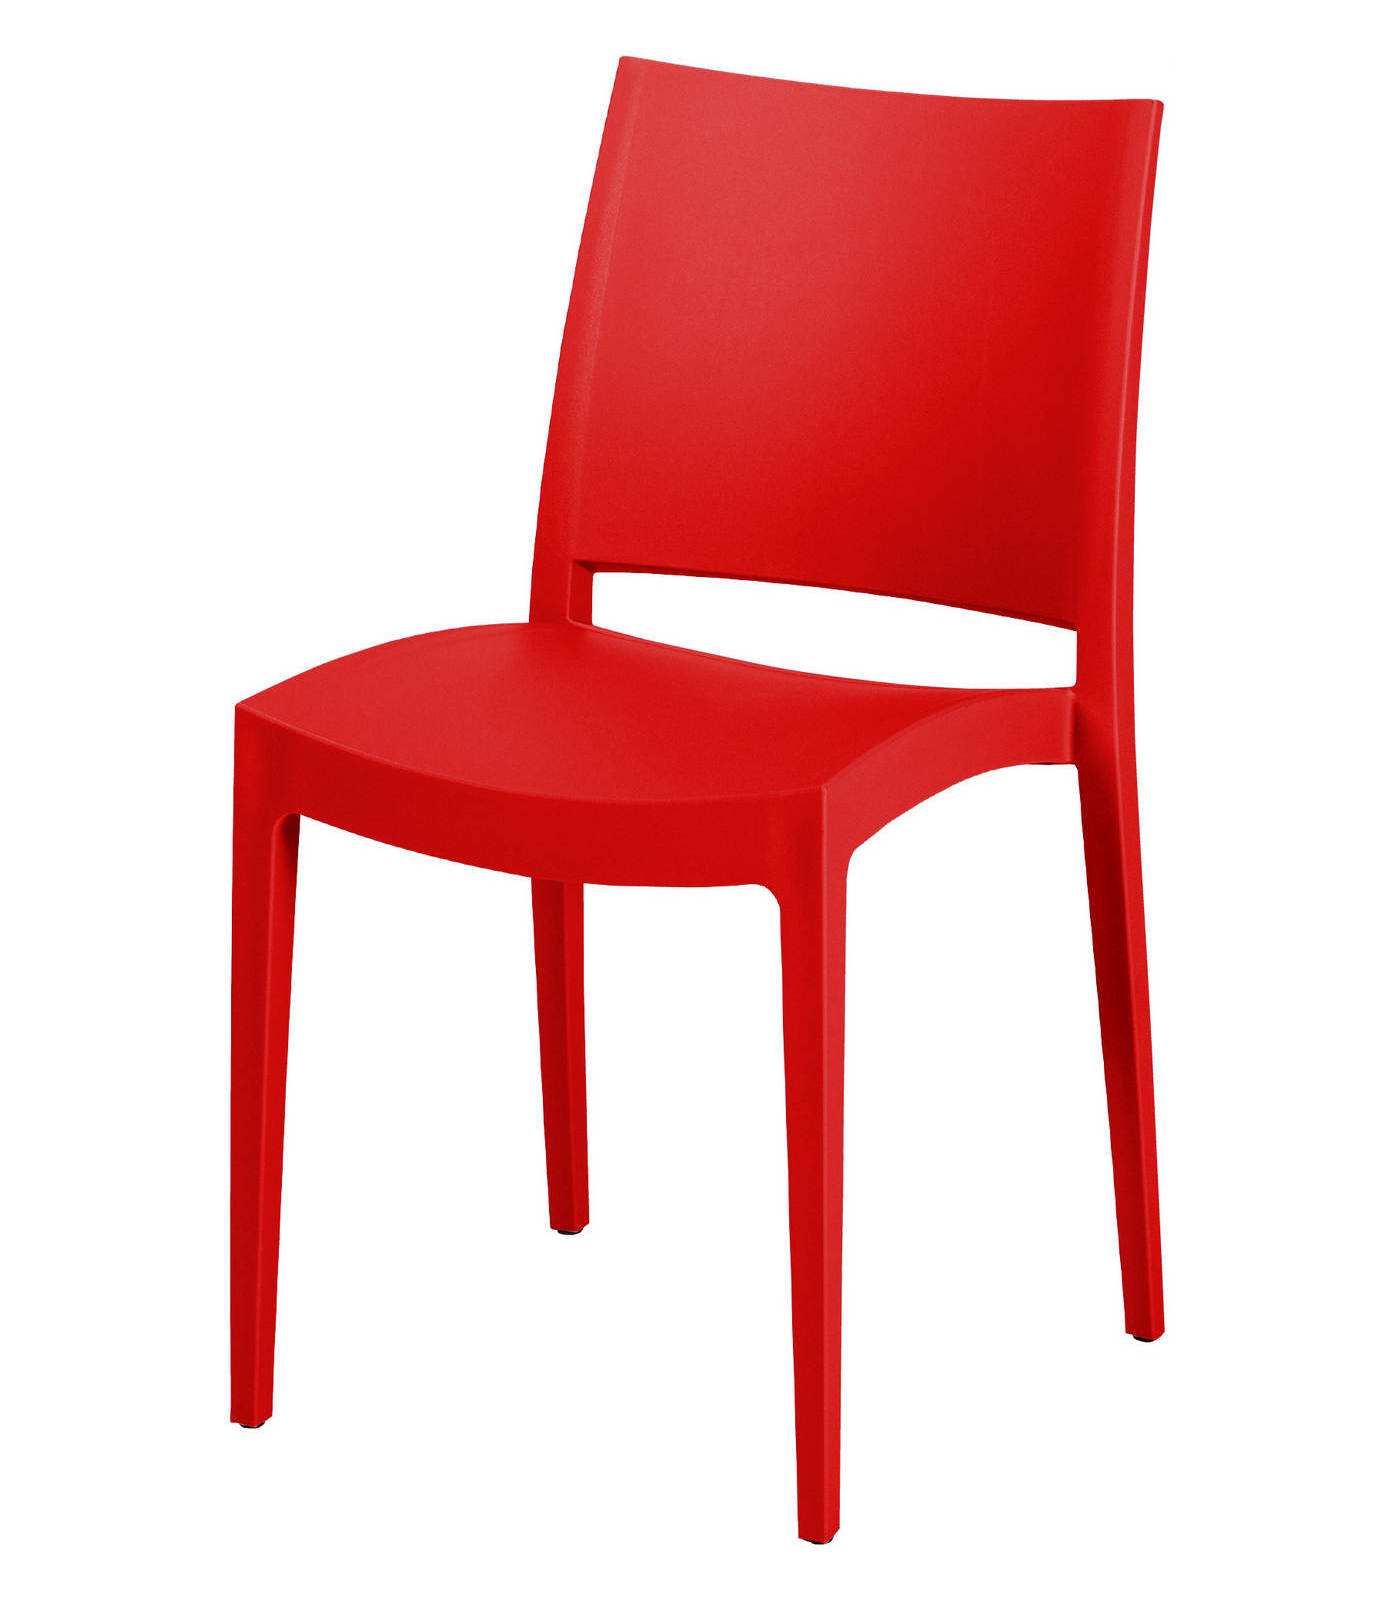 red chair group outdoor chair red chair cafered chair high end LBCLICK